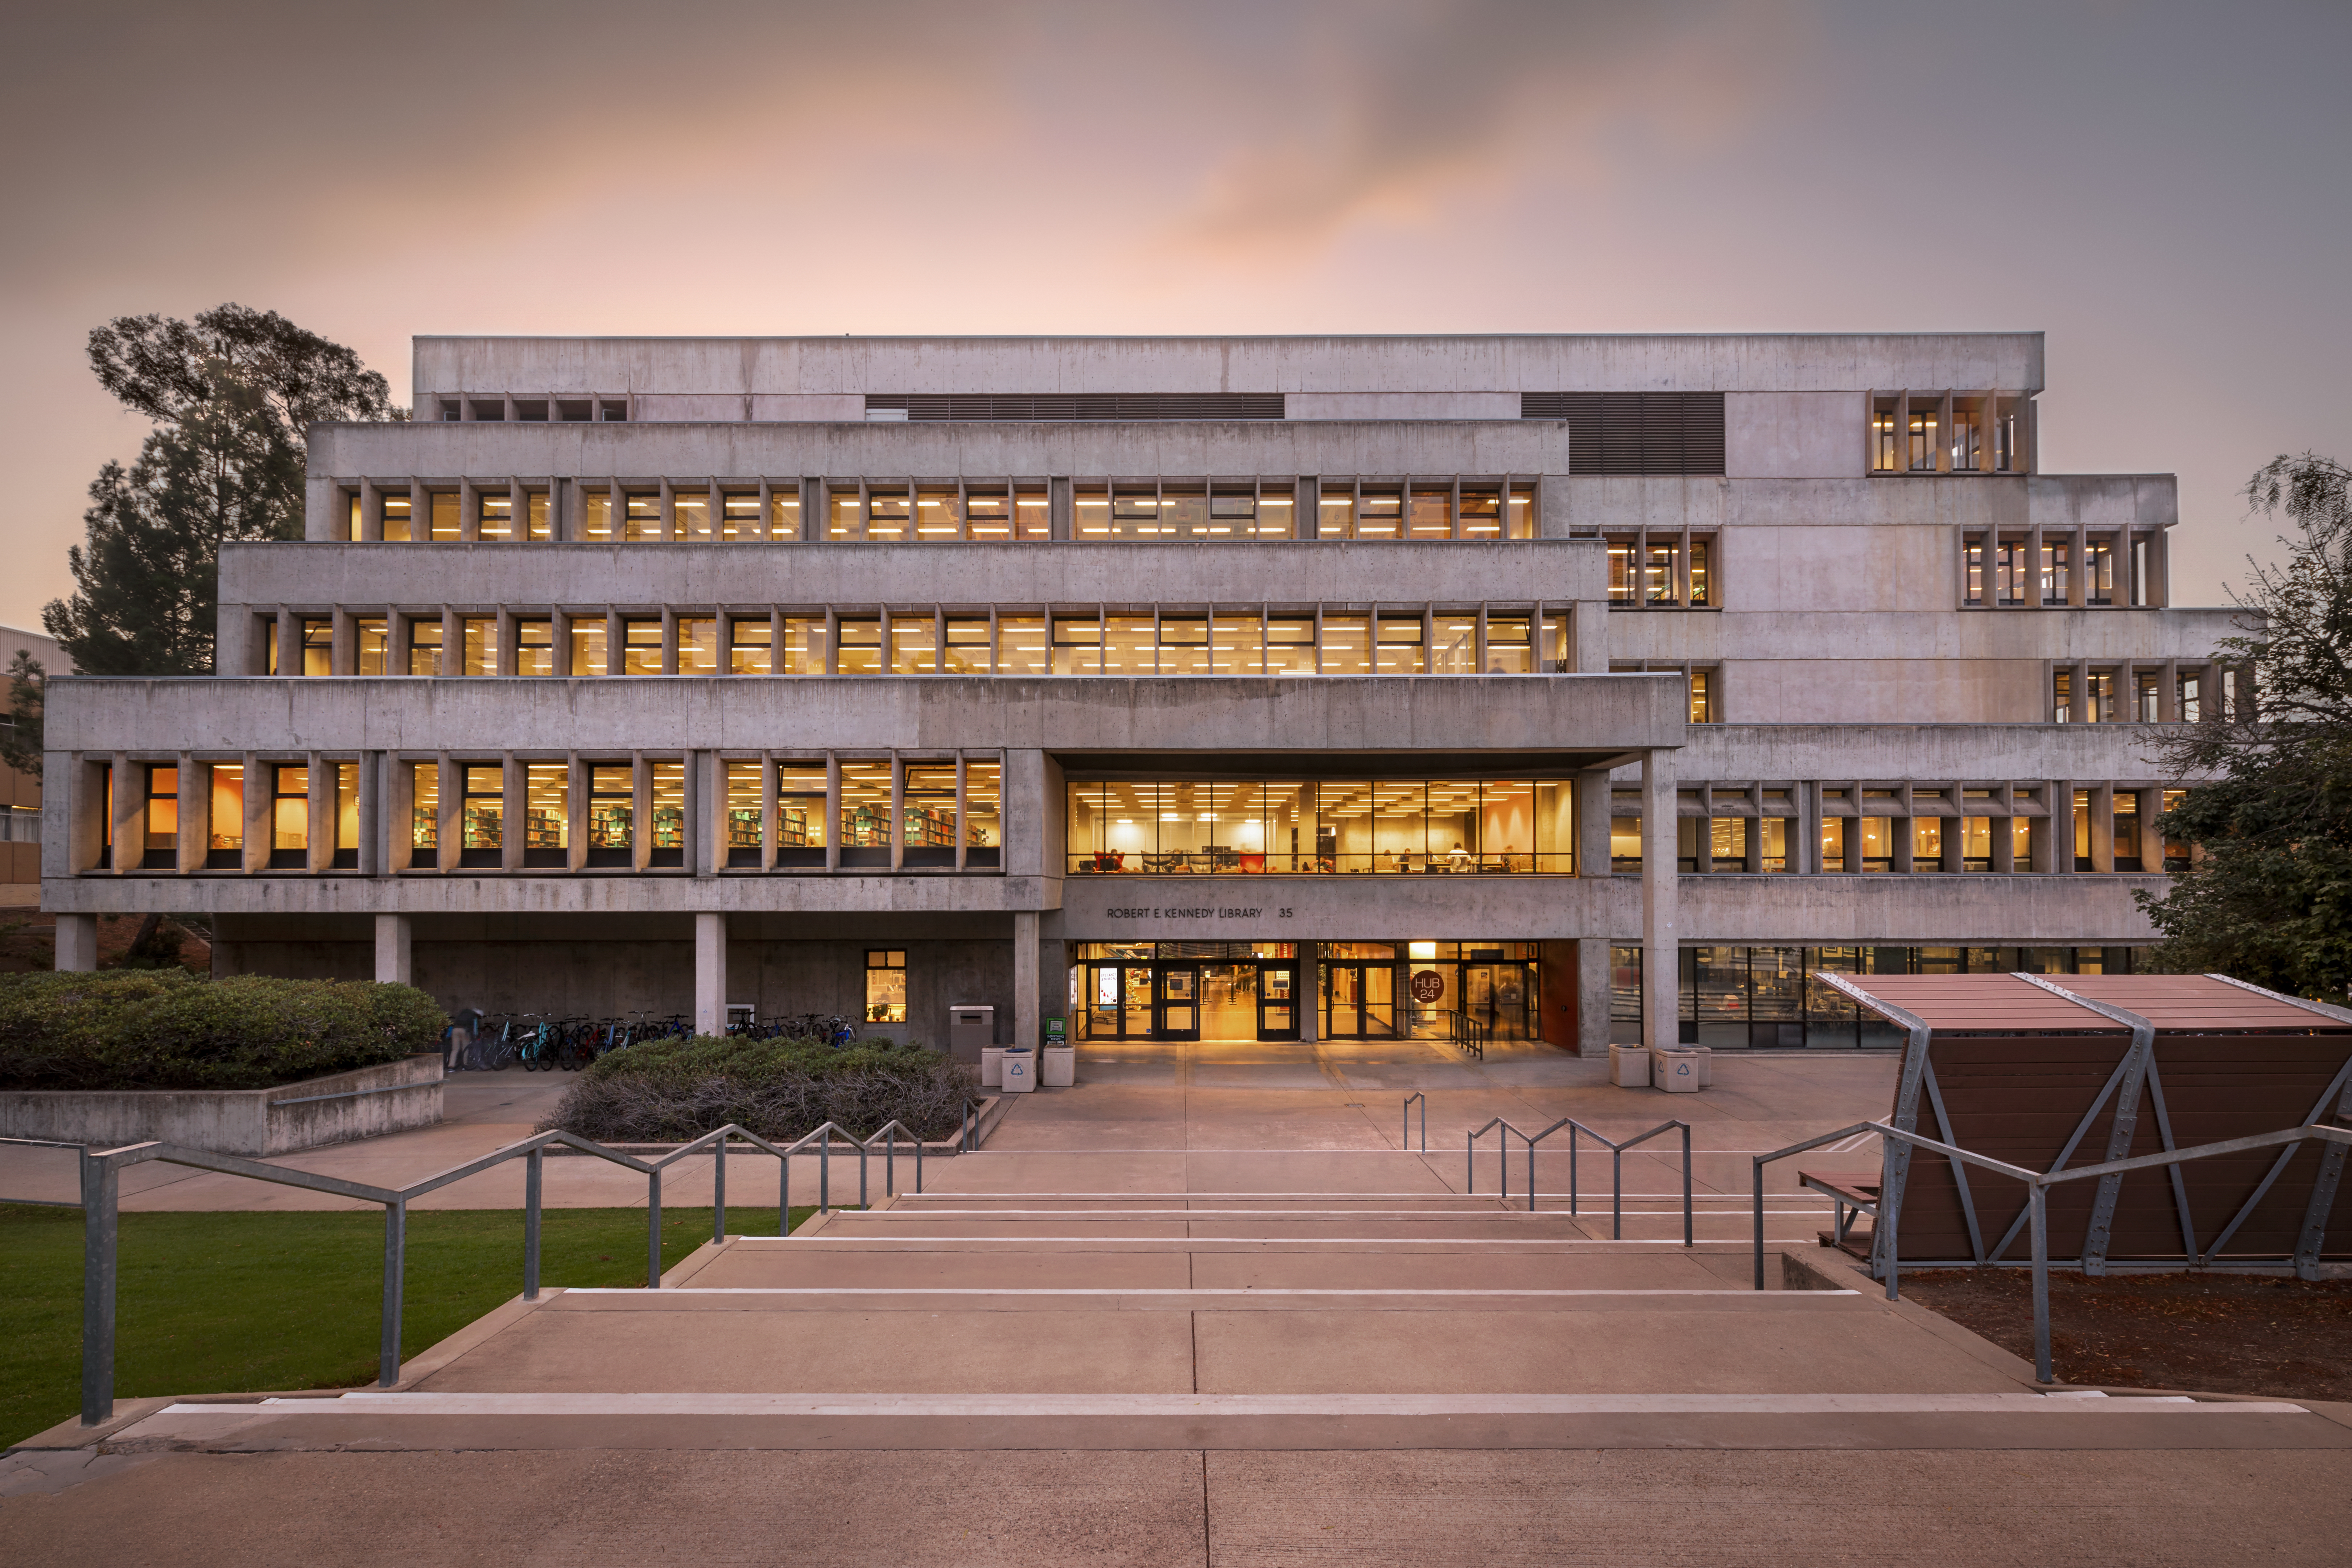 Kennedy library at sunset